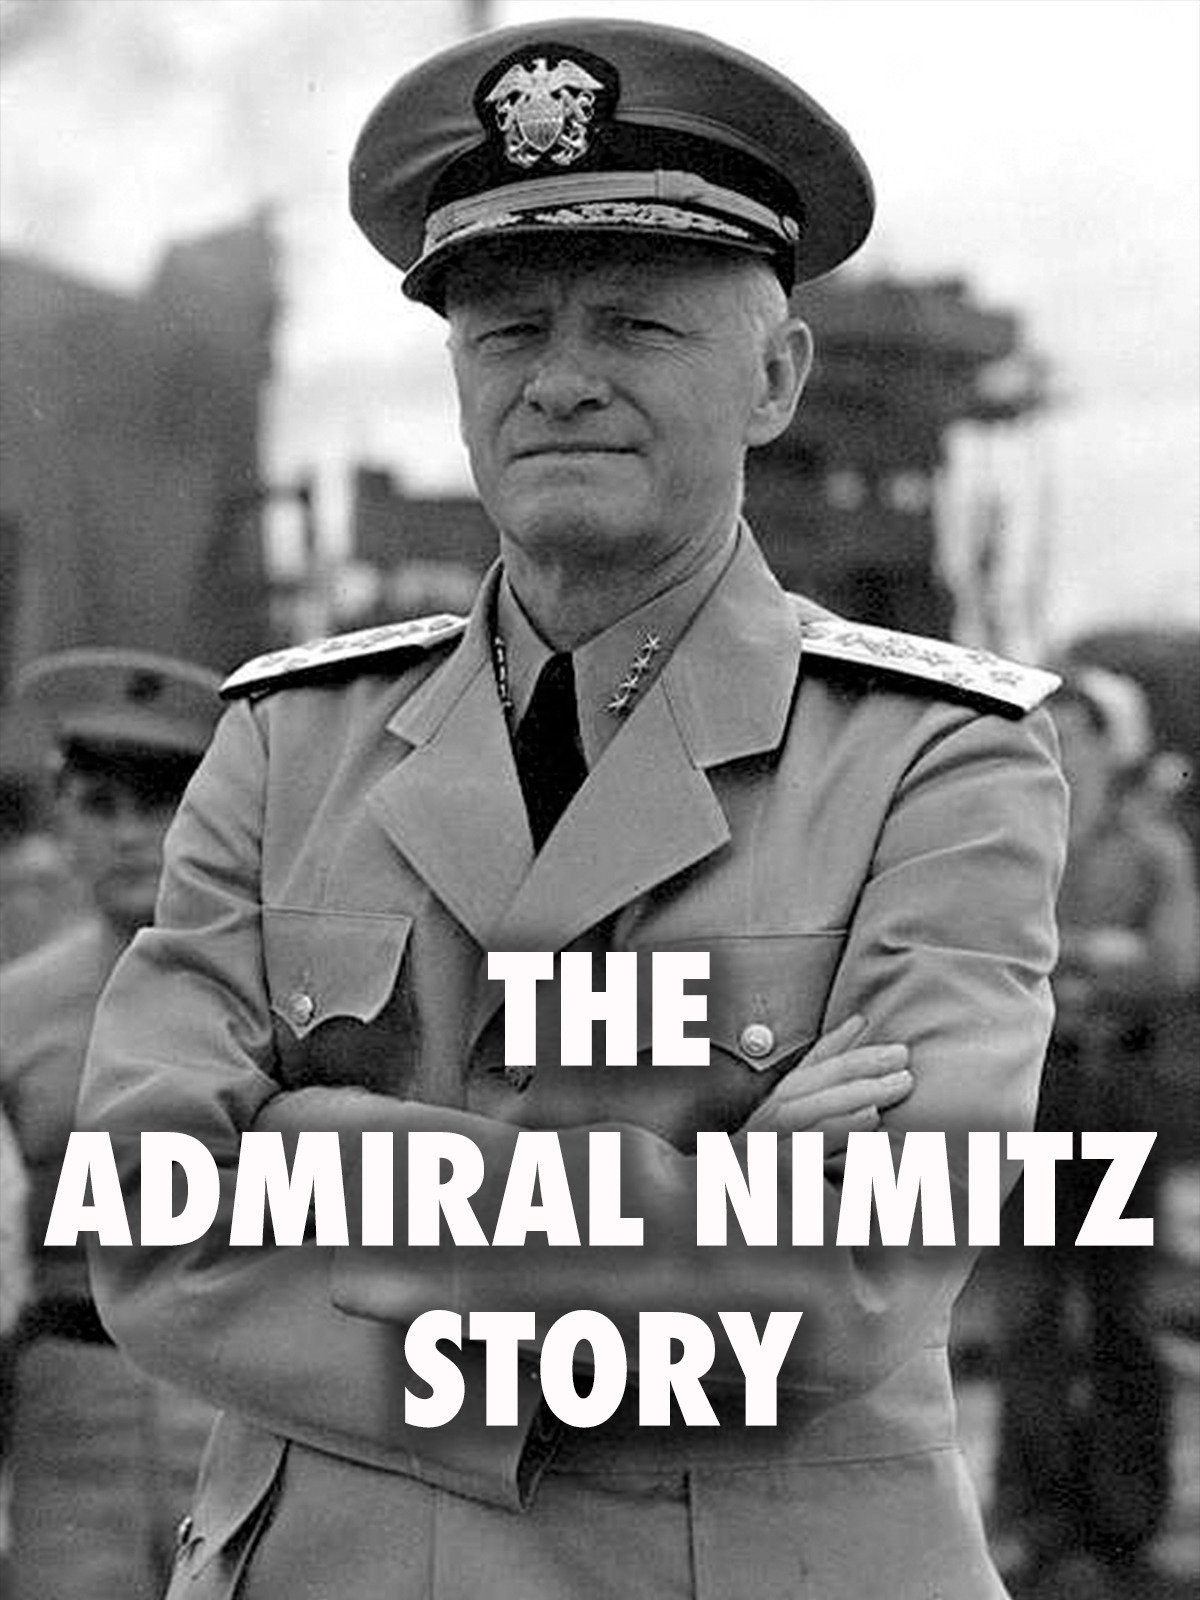 The Admiral Nimitz Story